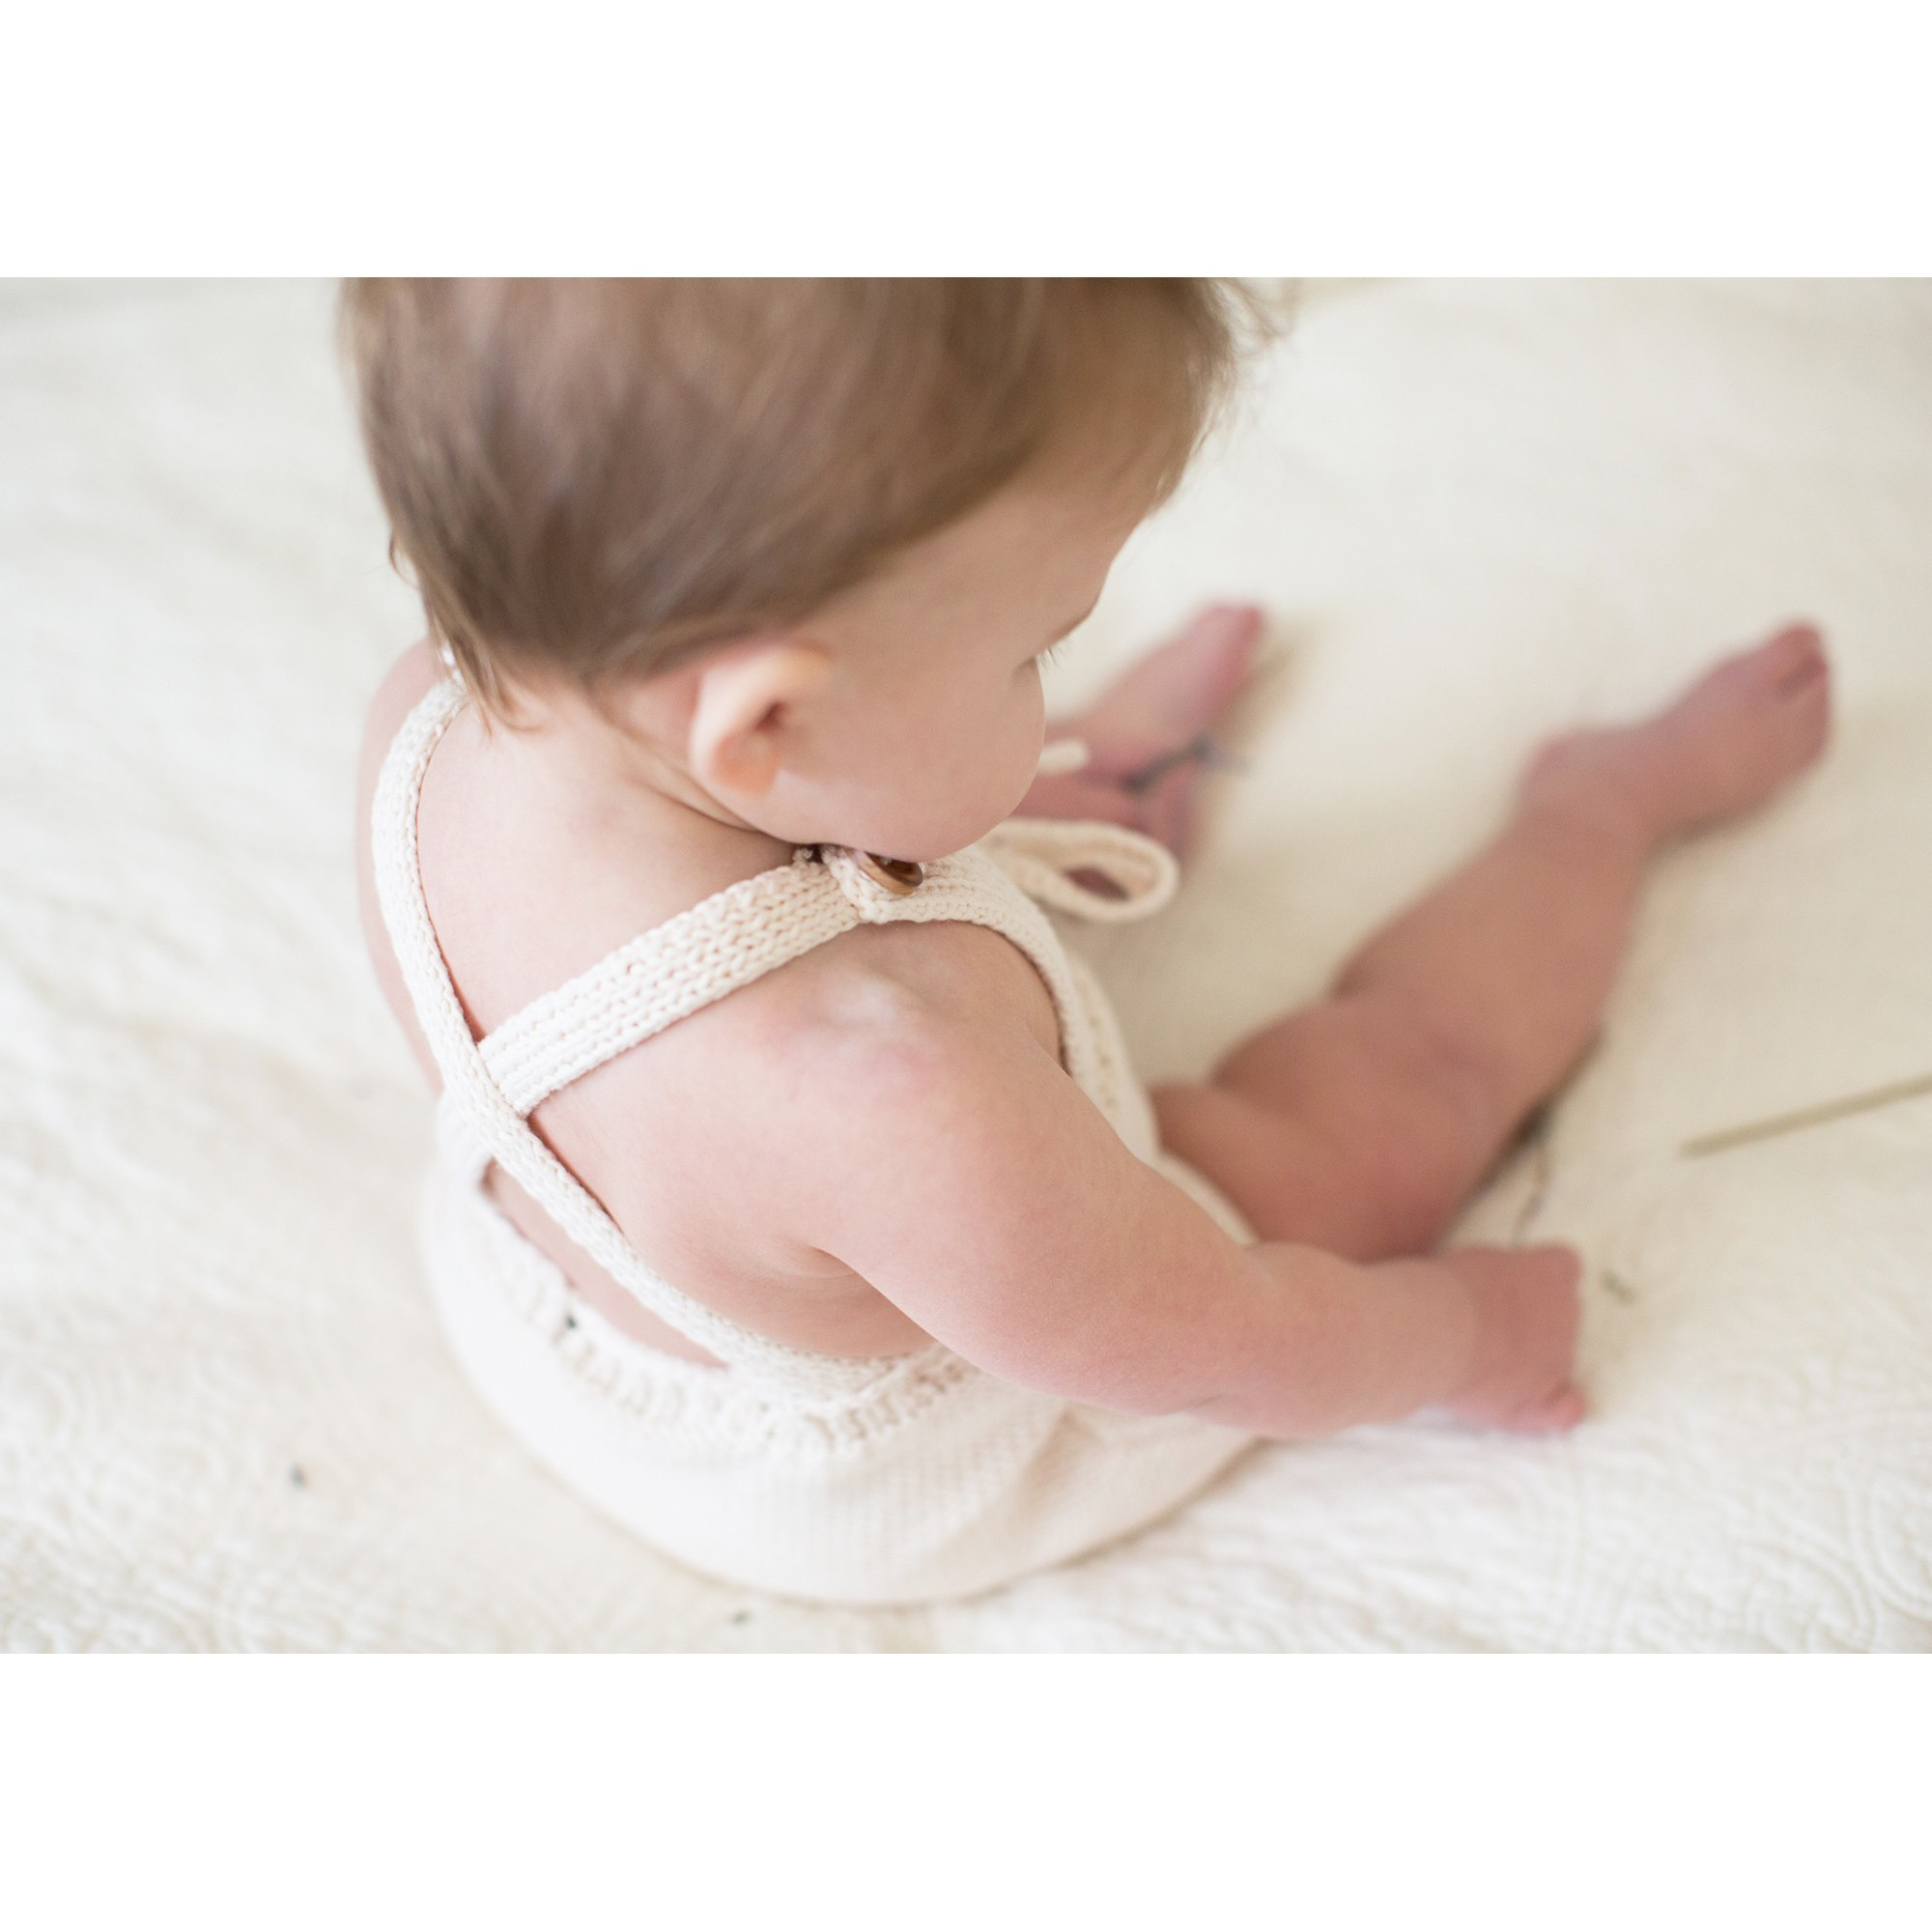 Félicie rompers for baby made from cotton - natural white color - worn